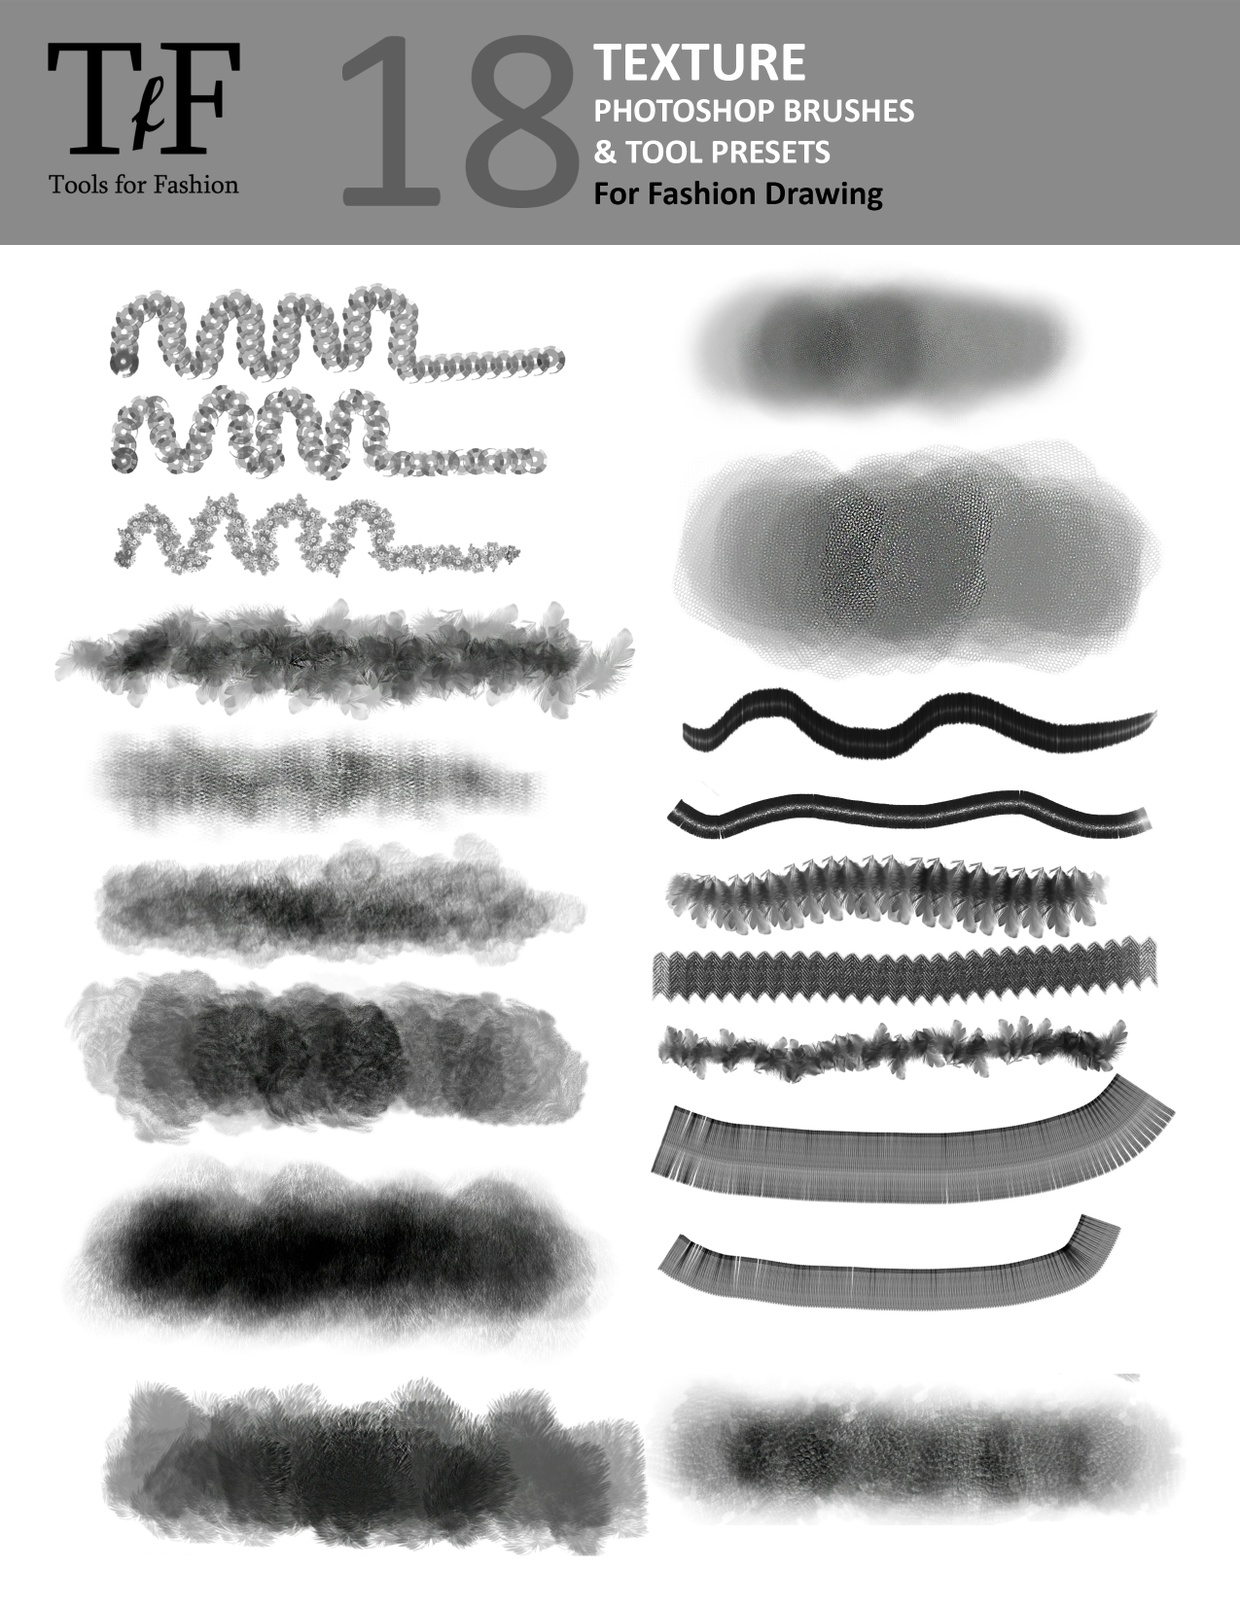 Fashion Brushes and Tool Presets for Photoshop